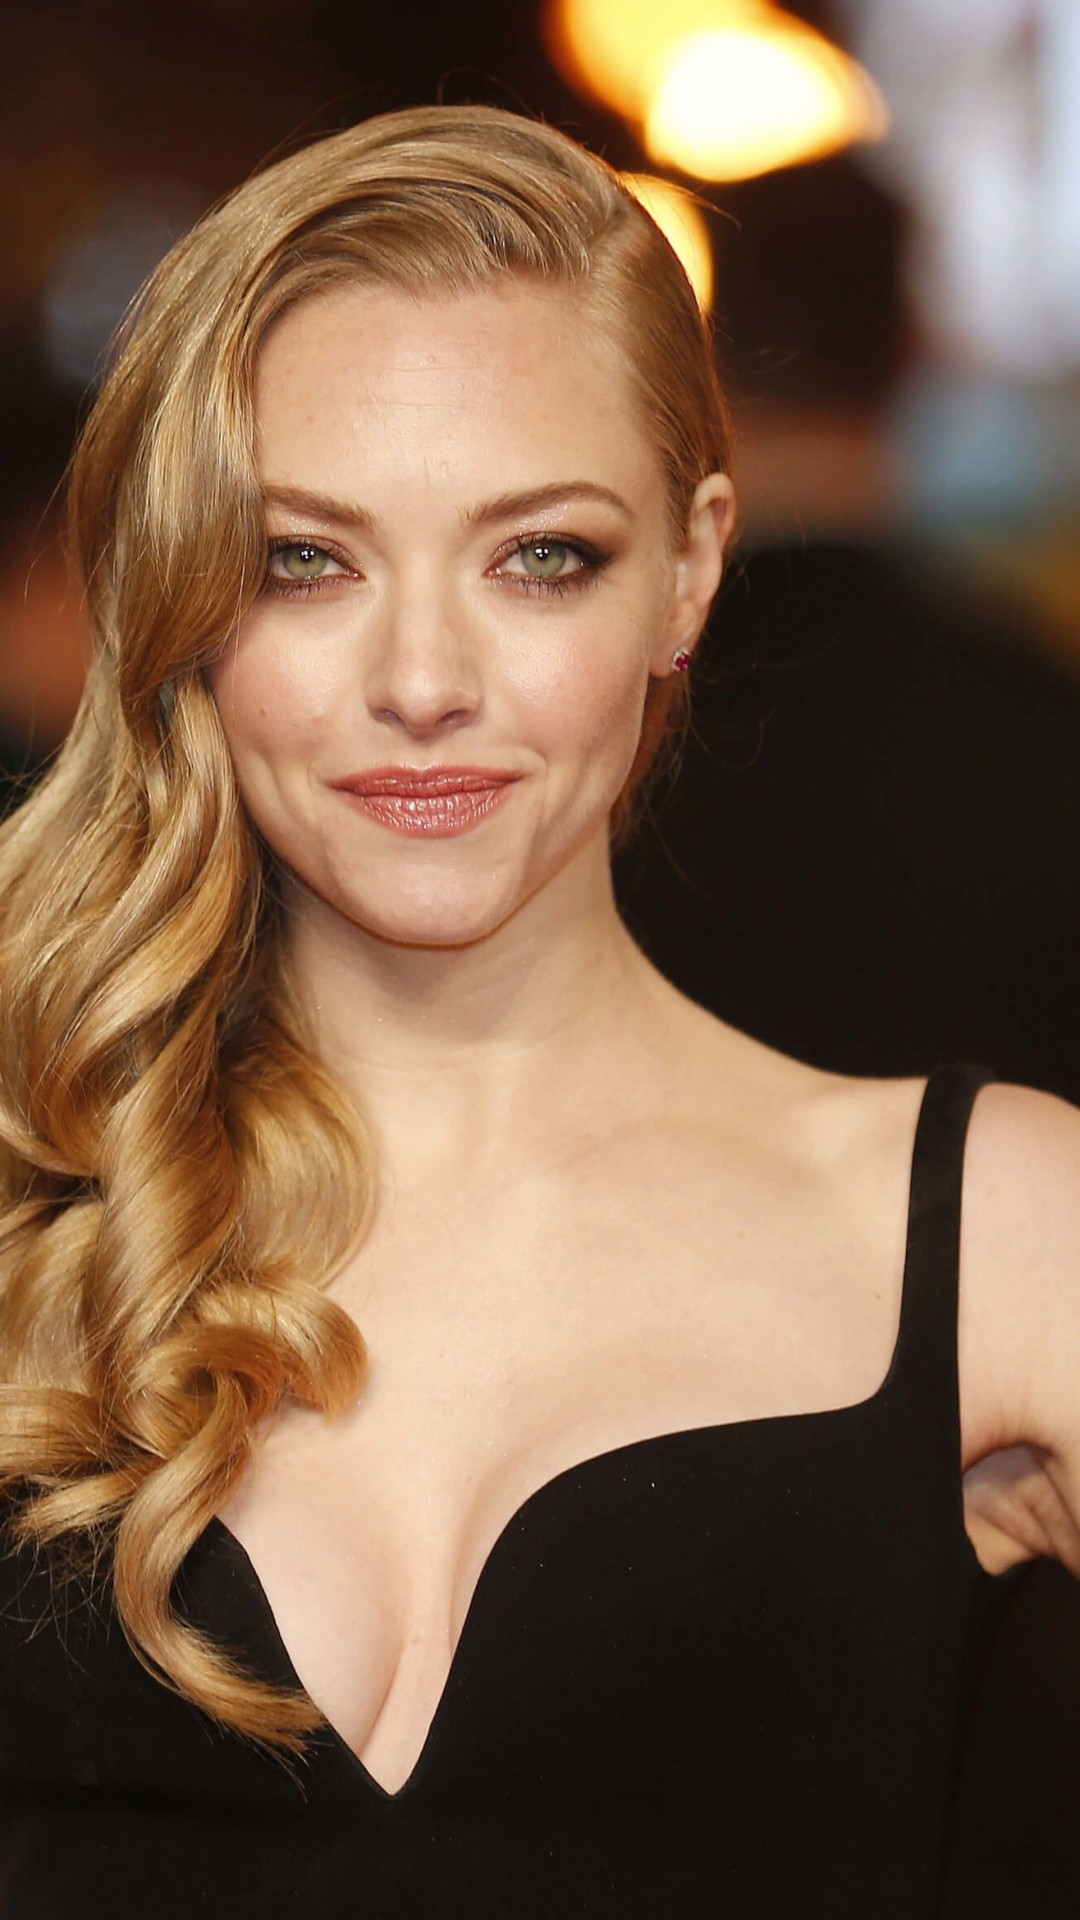 Amanda Seyfried Wallpaper for HTC One